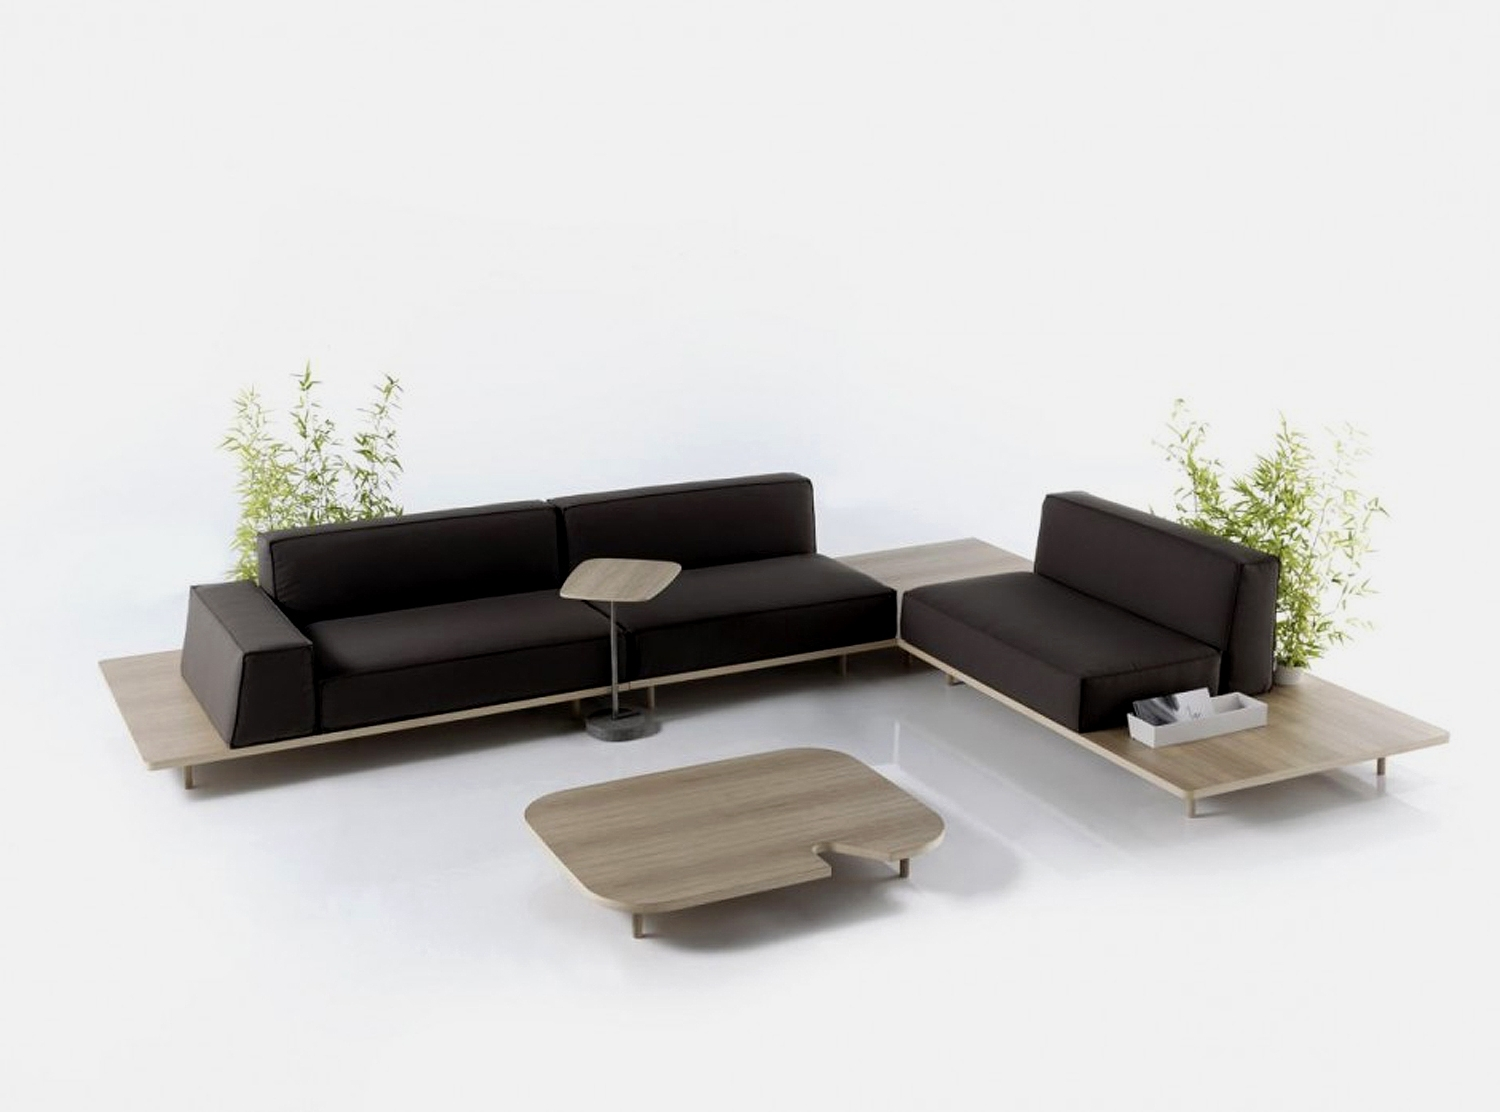 Famous Contemporary Sofa Chairs Intended For Contemporary Furniture Designs Ideas Modern Office Sofa (View 10 of 20)